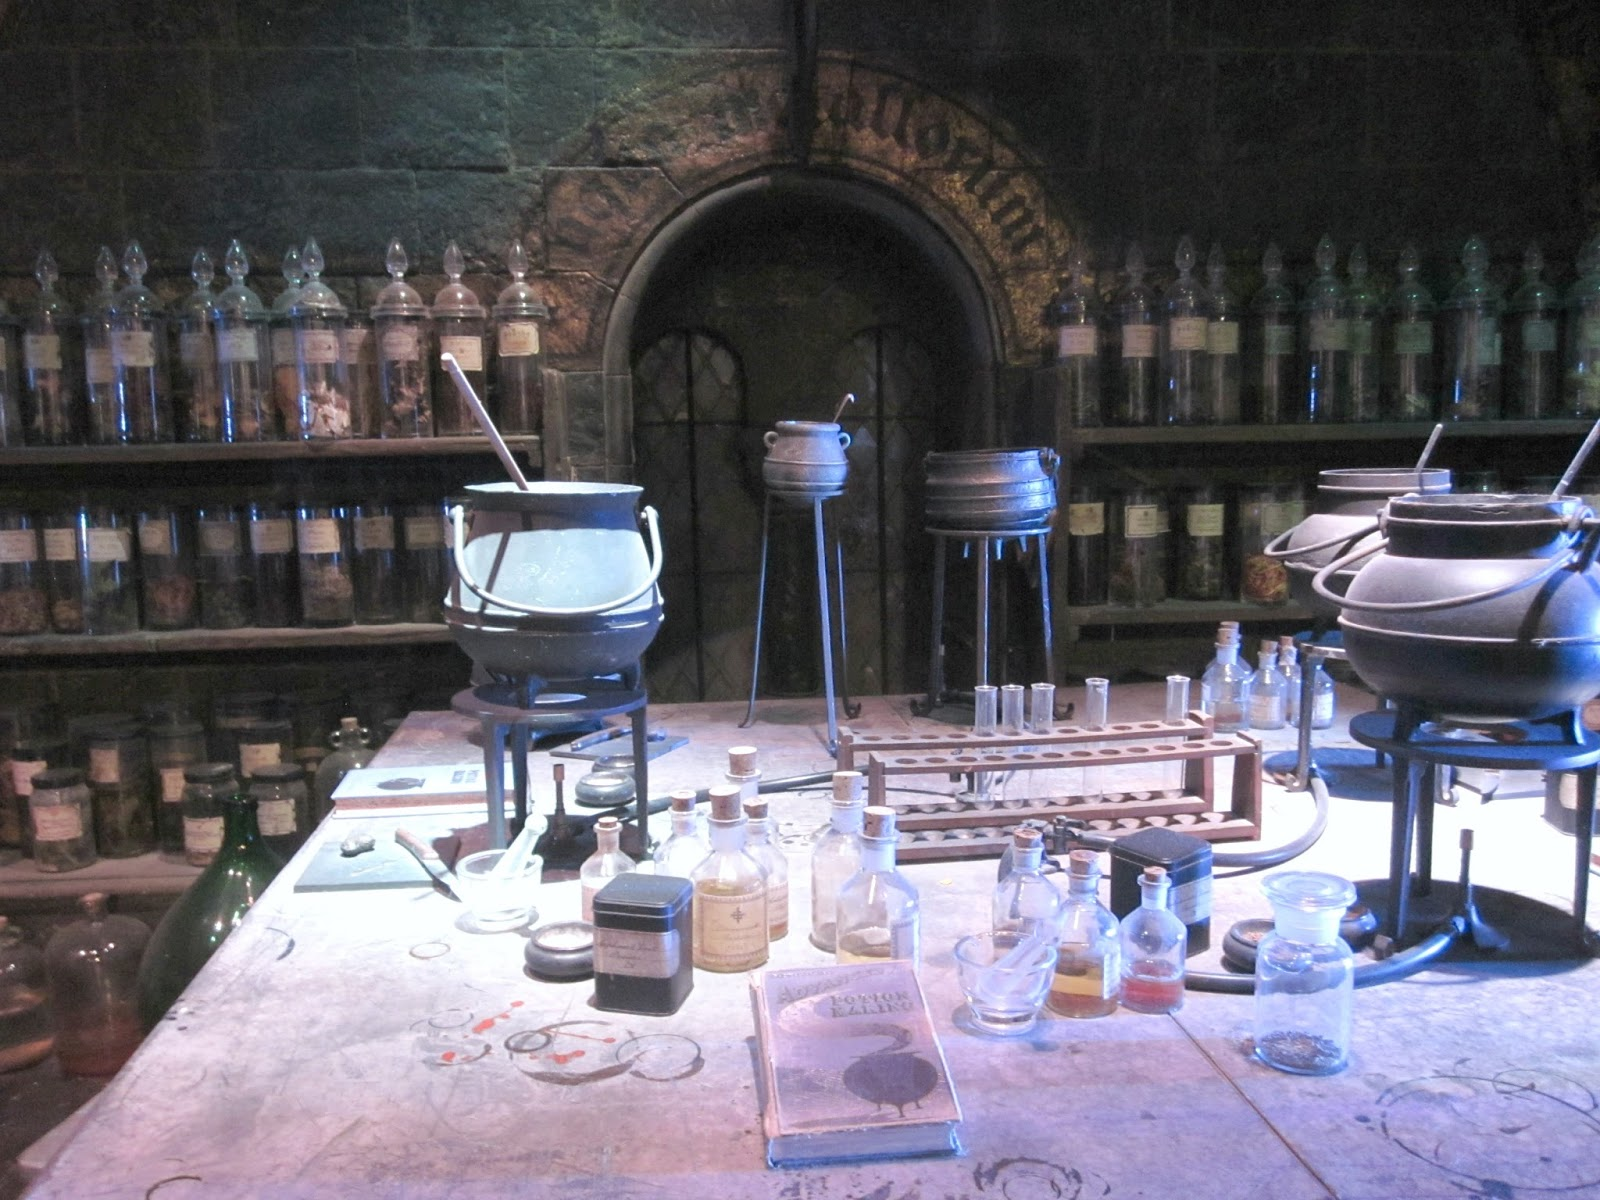 The Potions Classroom Dungeon at The Making Of Harry Potter Warner Brothers Studio Tour